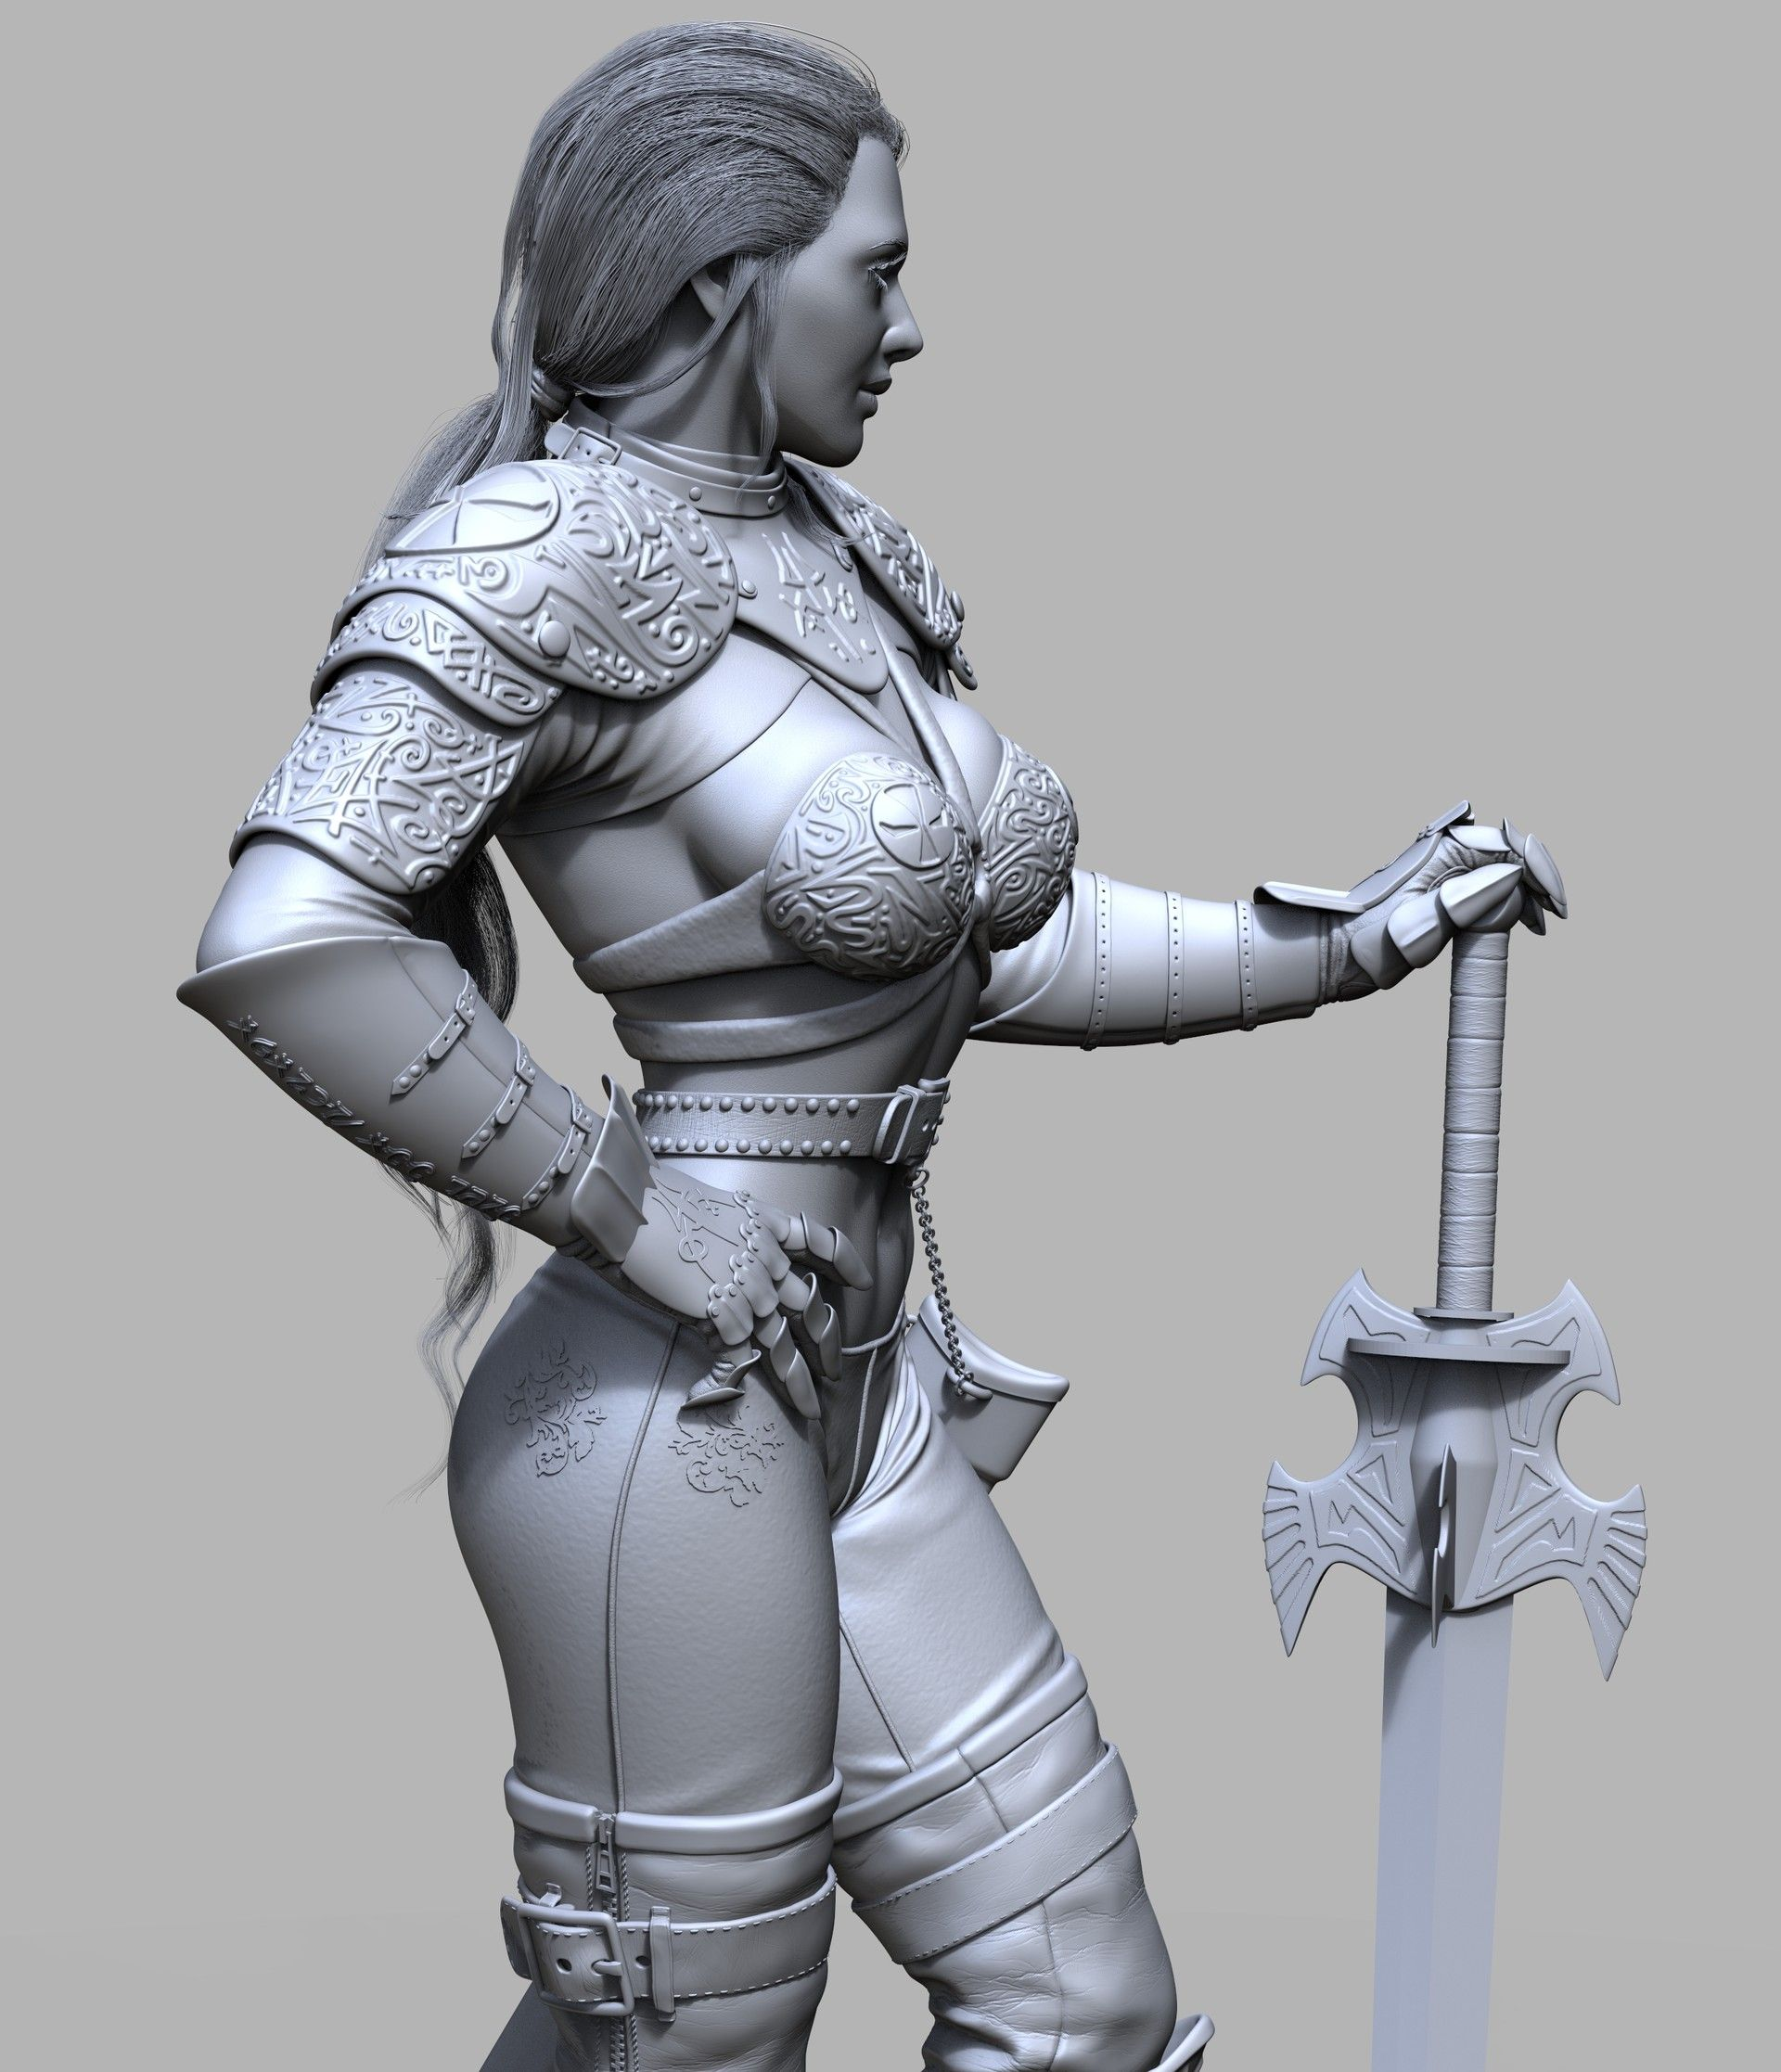 ArtStation - June Warrior 2, Arturius Lazer